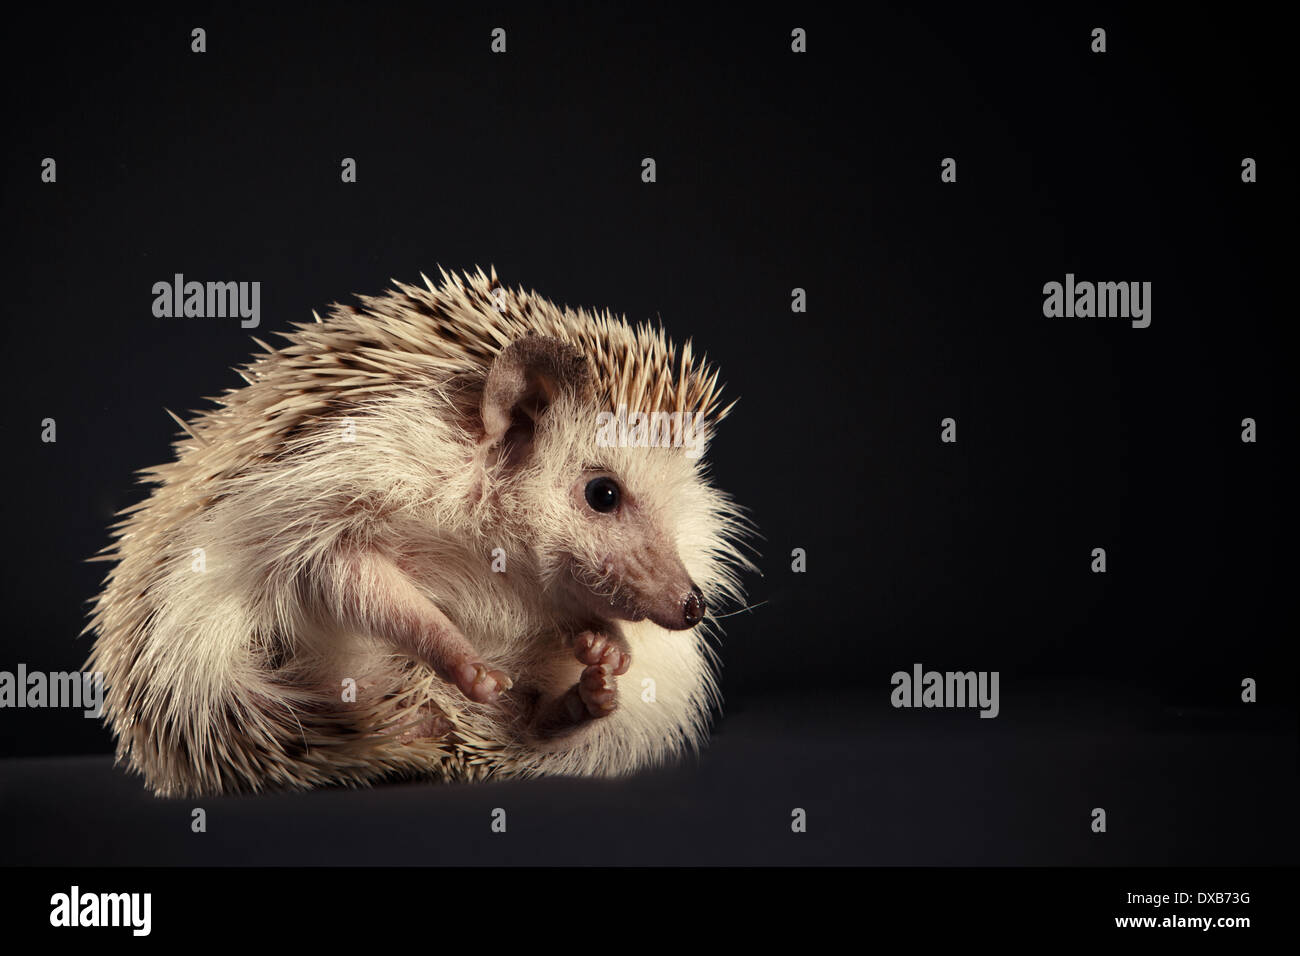 Hedgehog rolled into a ball. Stock Photo